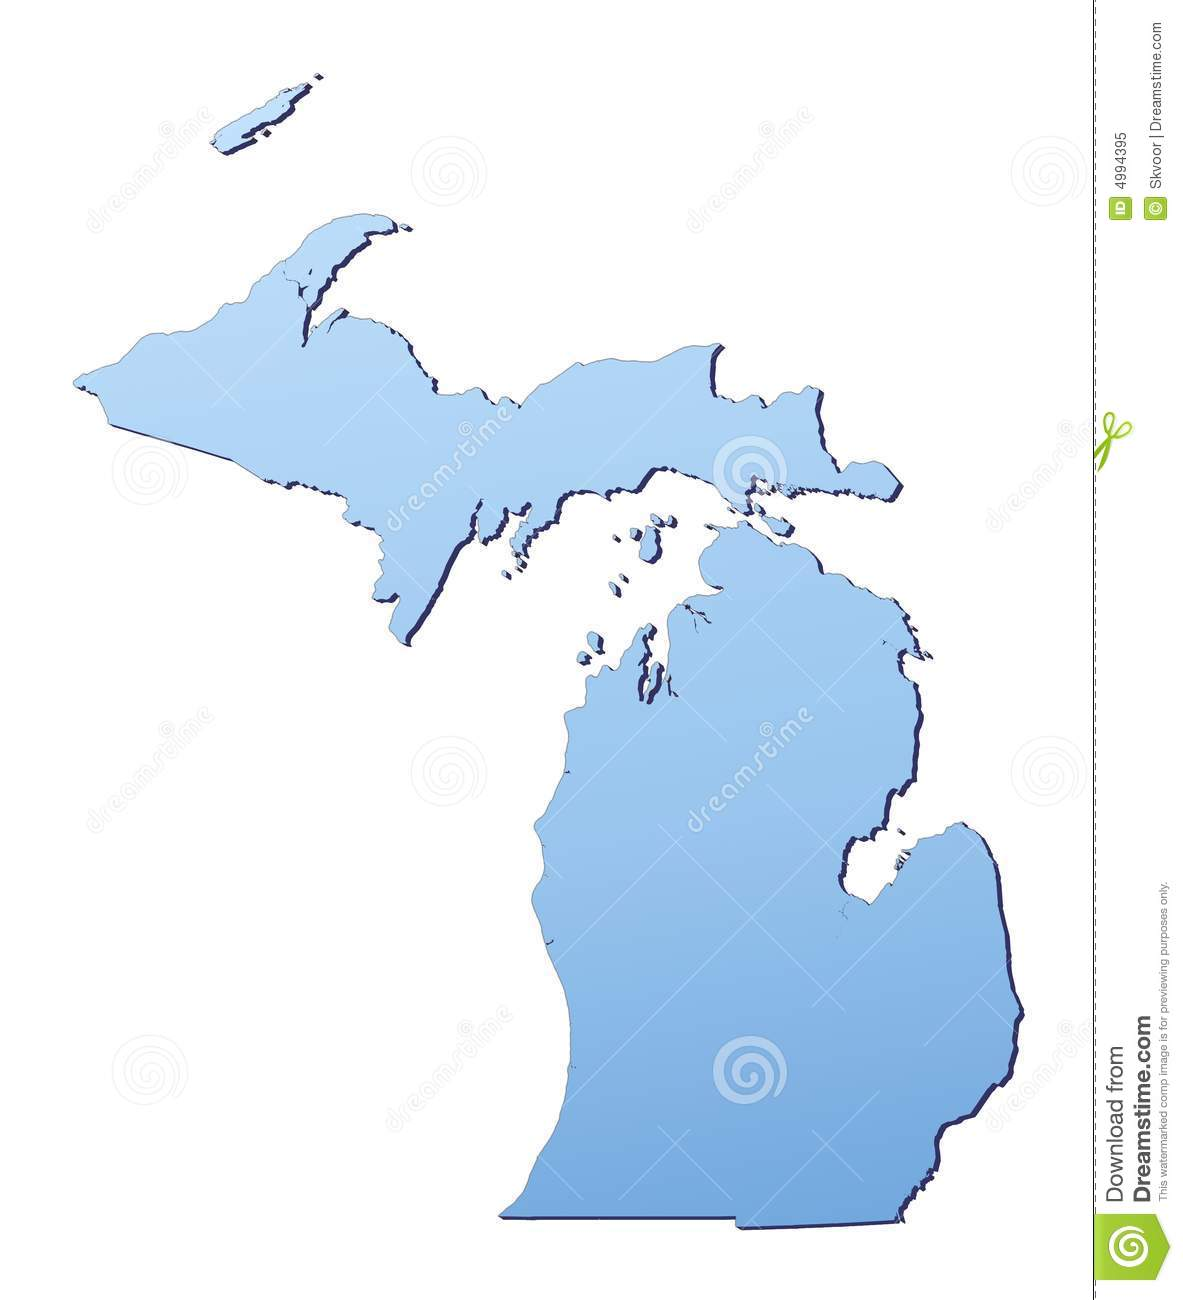 Show Usa Map Google Images Michigan State Maps USA Maps Of - Michigan usa map